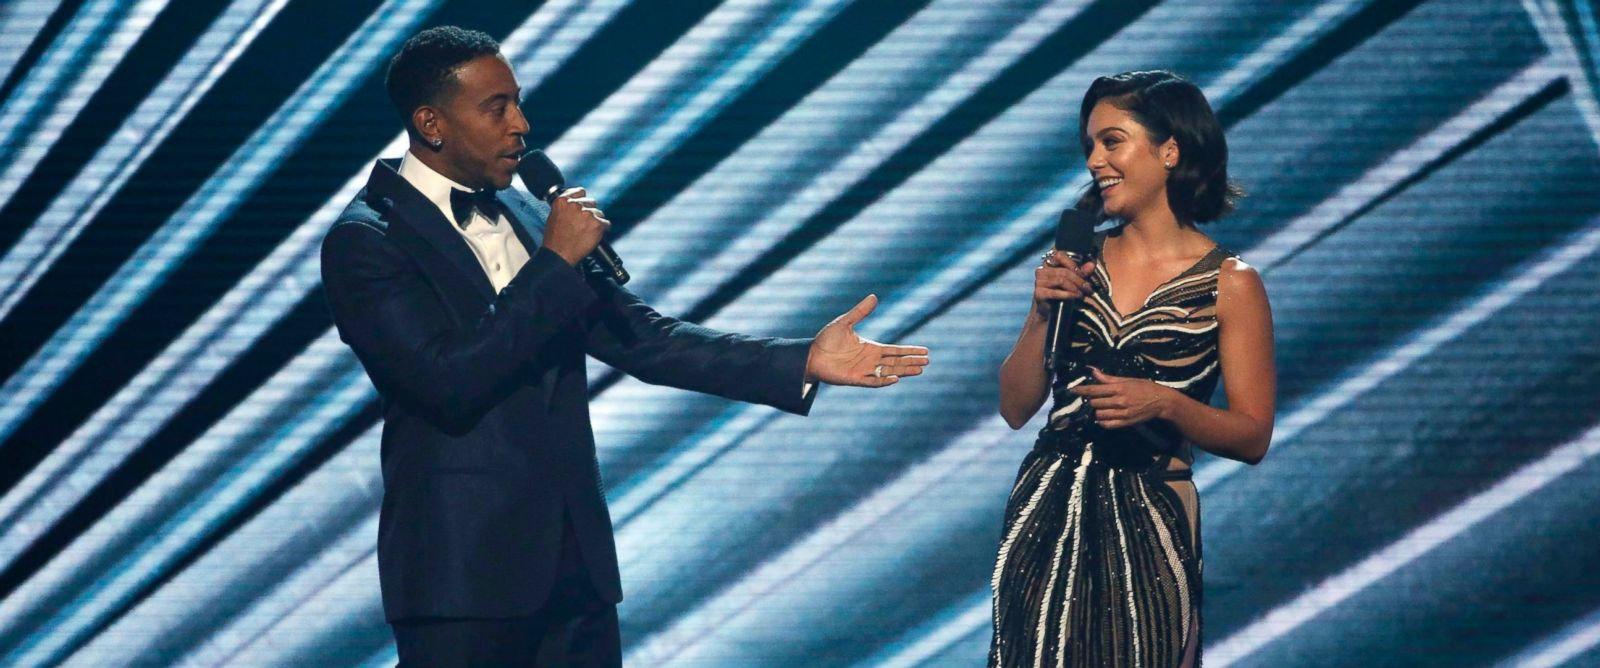 RT-billboard-awards-ludacris-hudgens-win-jef170521_12x5_1600_1495463247817.jpg